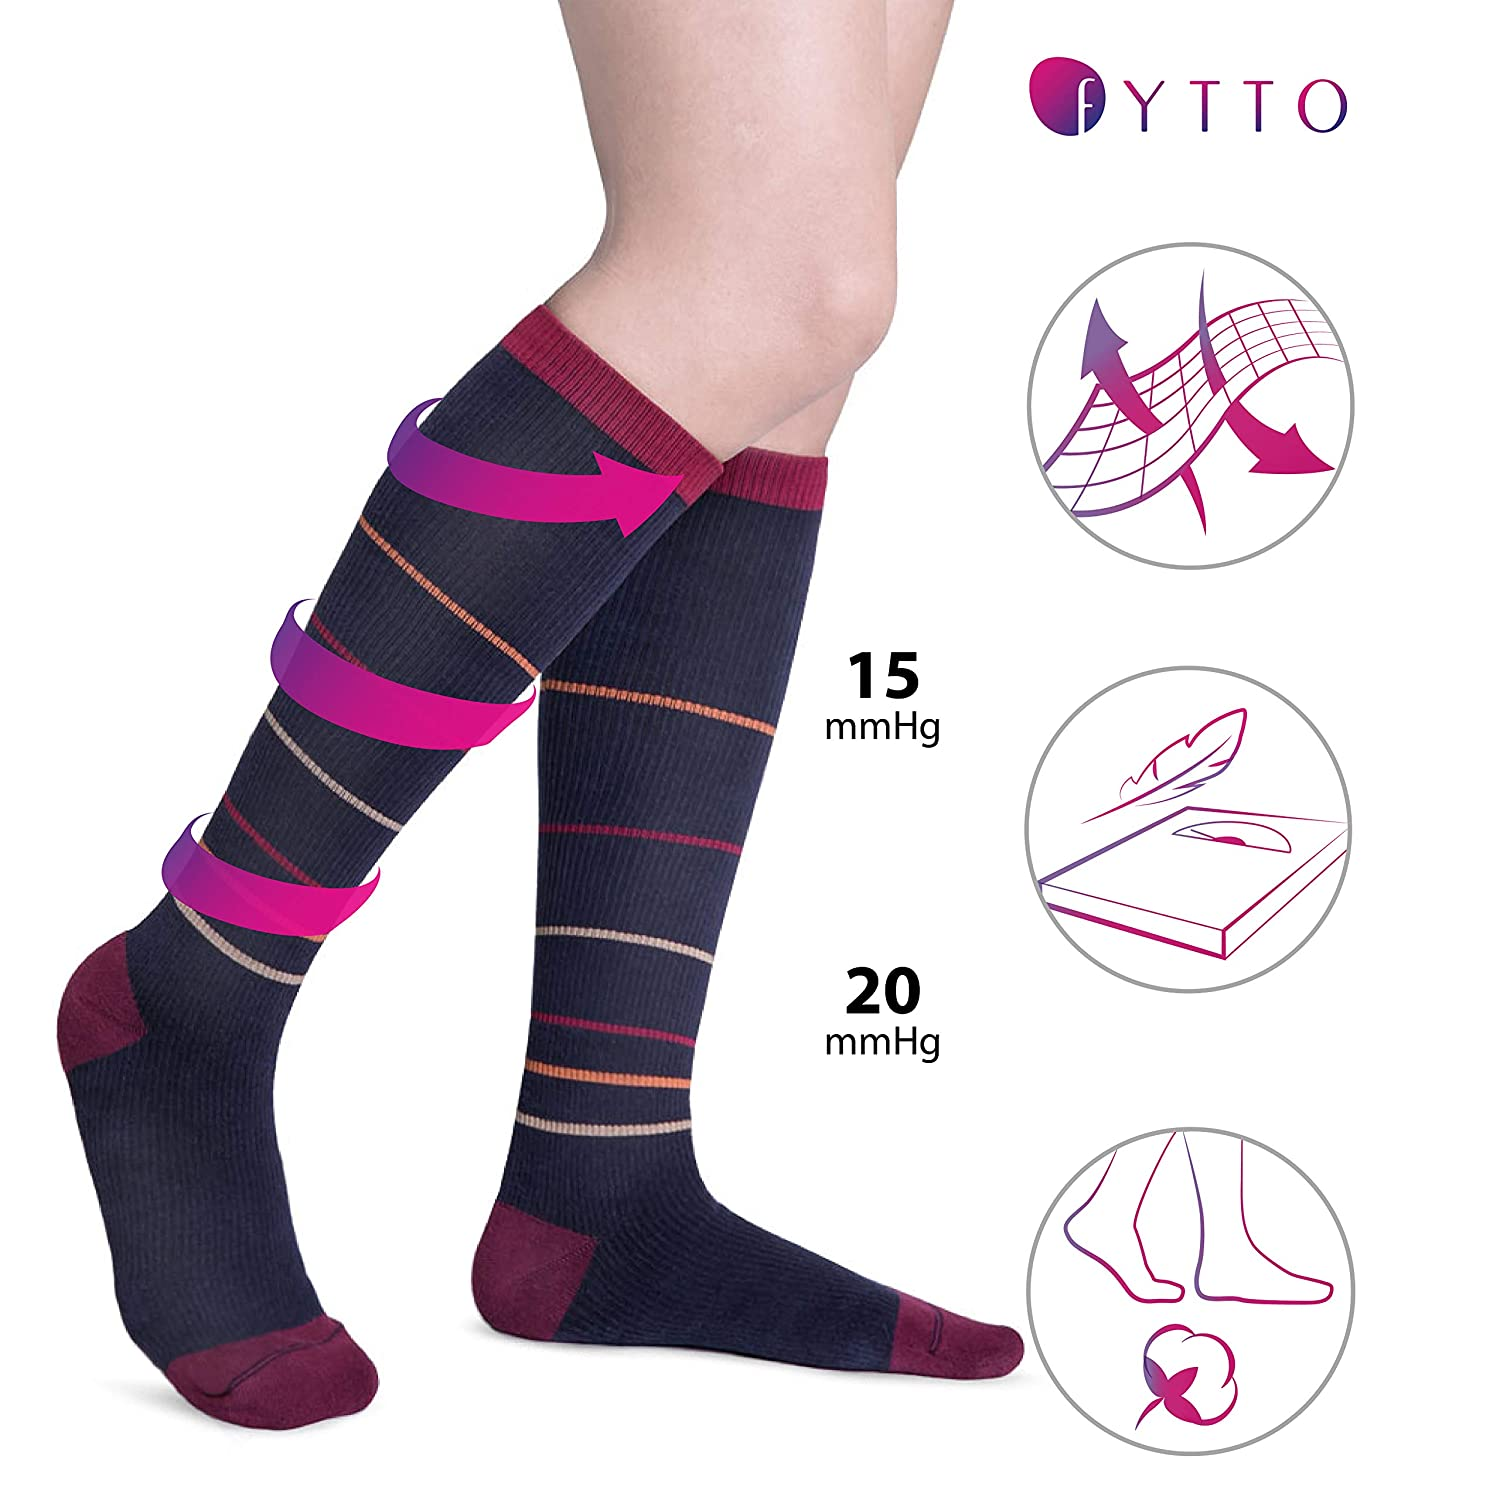 Buy Fytto 4080 Compression Socks Comfy Warm Graduated 15 20mmhg Knee High Hosiery A For Varicose Veins Improves Circulation Reduces Swelling And Energizes Legs Cozyfit Unisex Navy Striped Large Online At Low